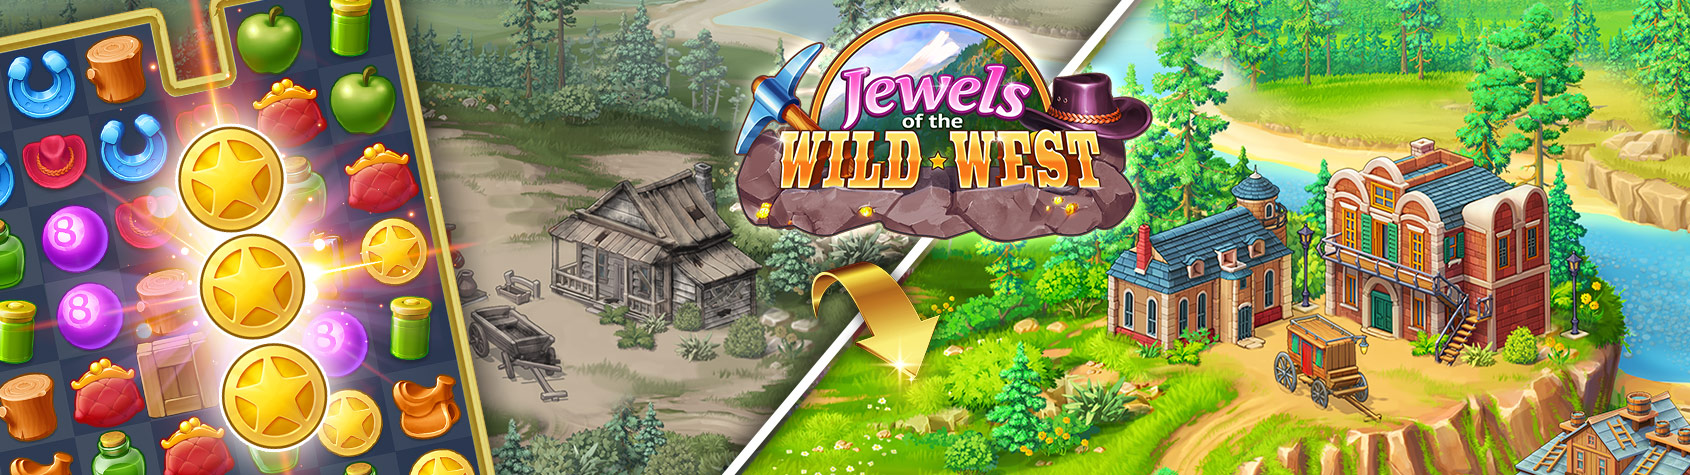 Jewels of the Wild West™: Match gems & restore the town